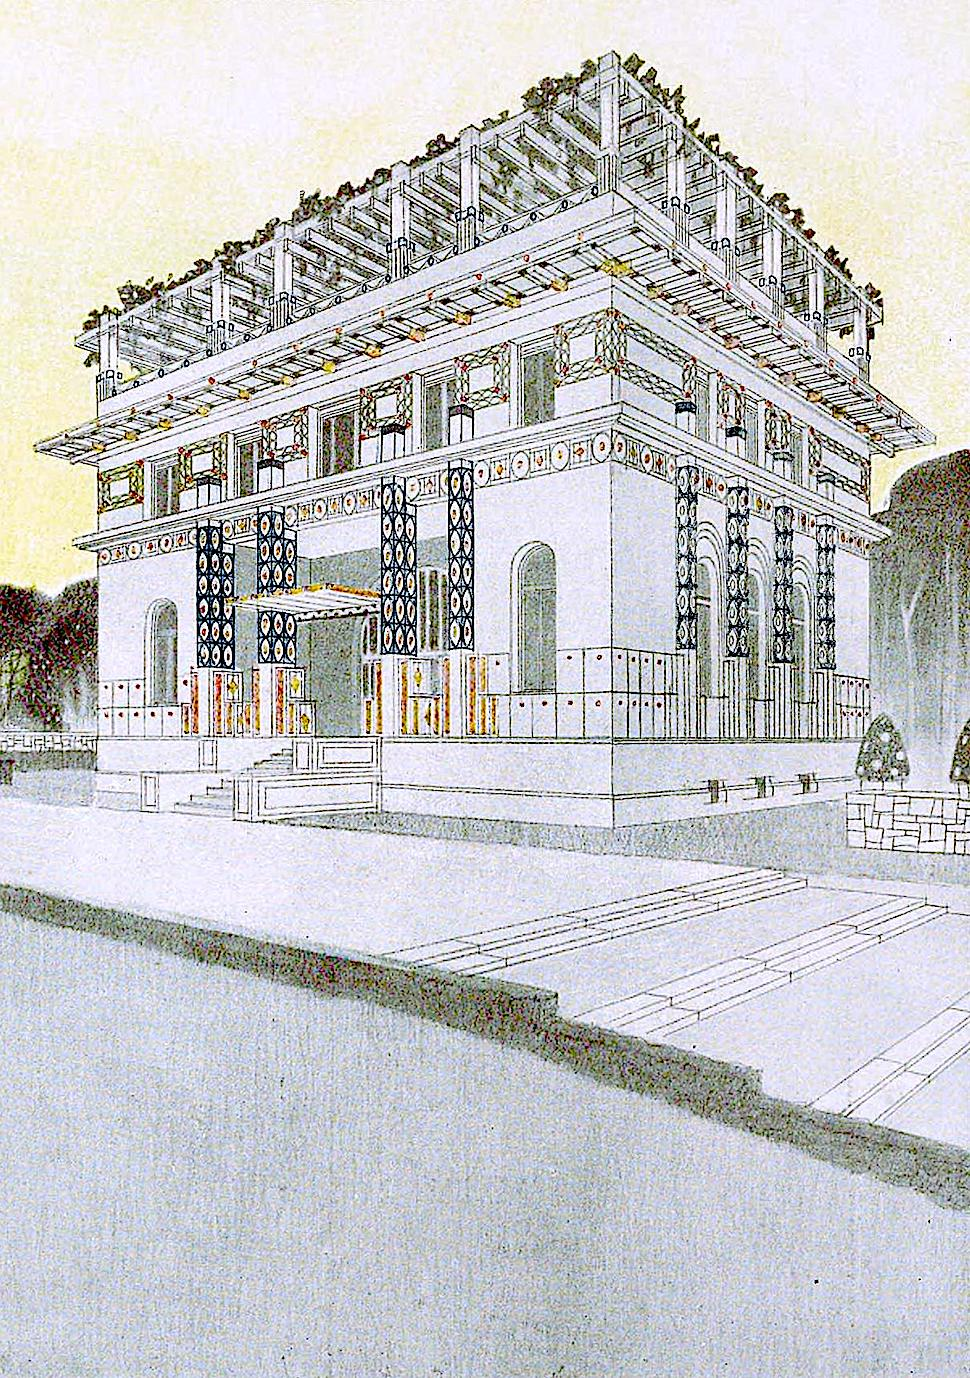 a 1908 building design by Otto Schonthal, secession style